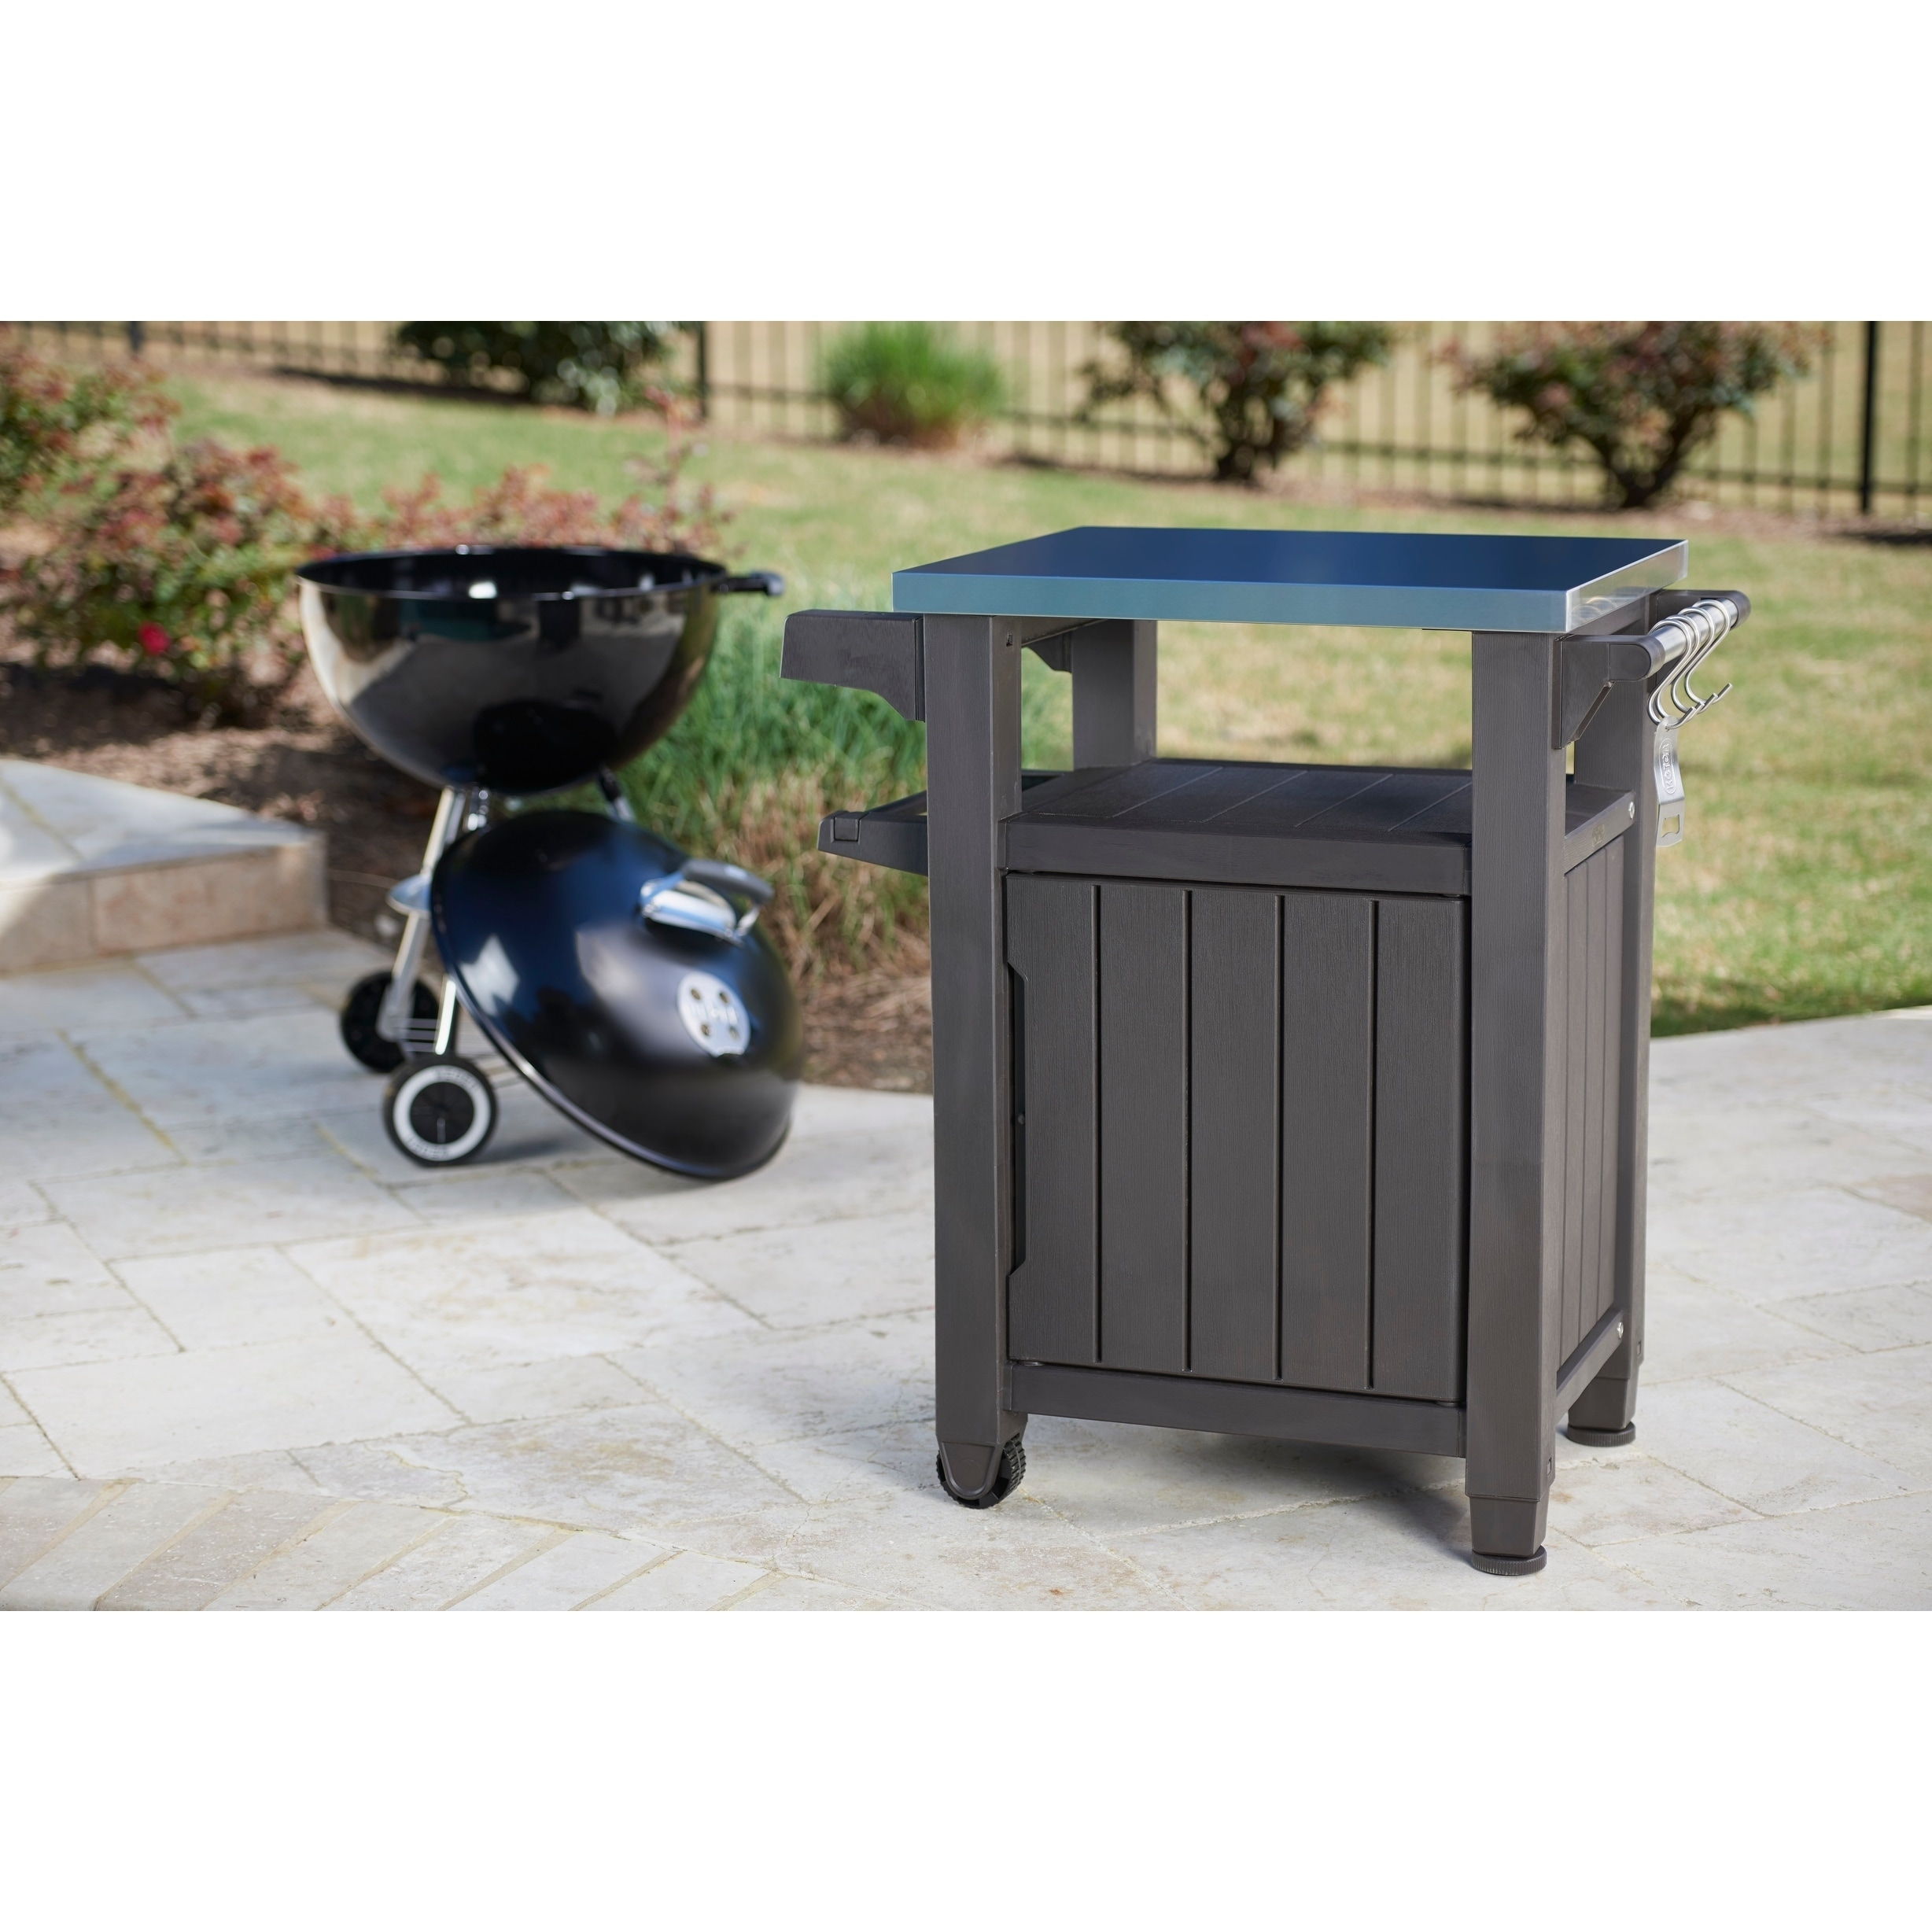 Keter Unity Indoor Outdoor Serving Cart Prep Station With Storage   Free  Shipping Today   Overstock.com   24106639